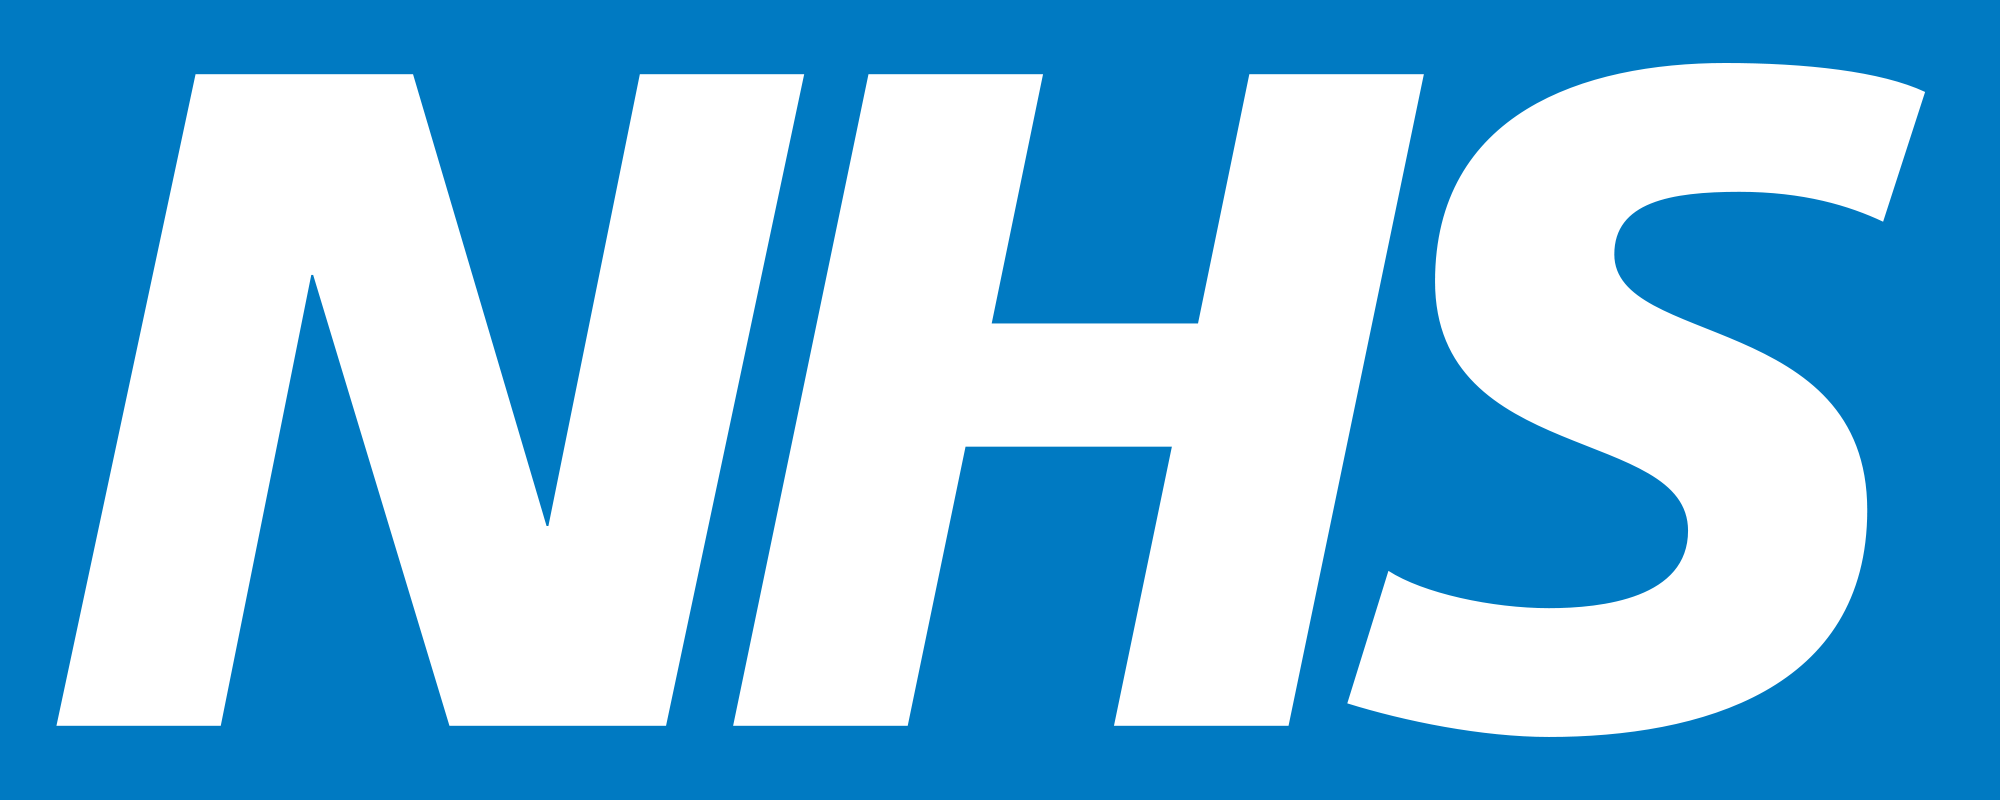 Happy Birthday to the NHS